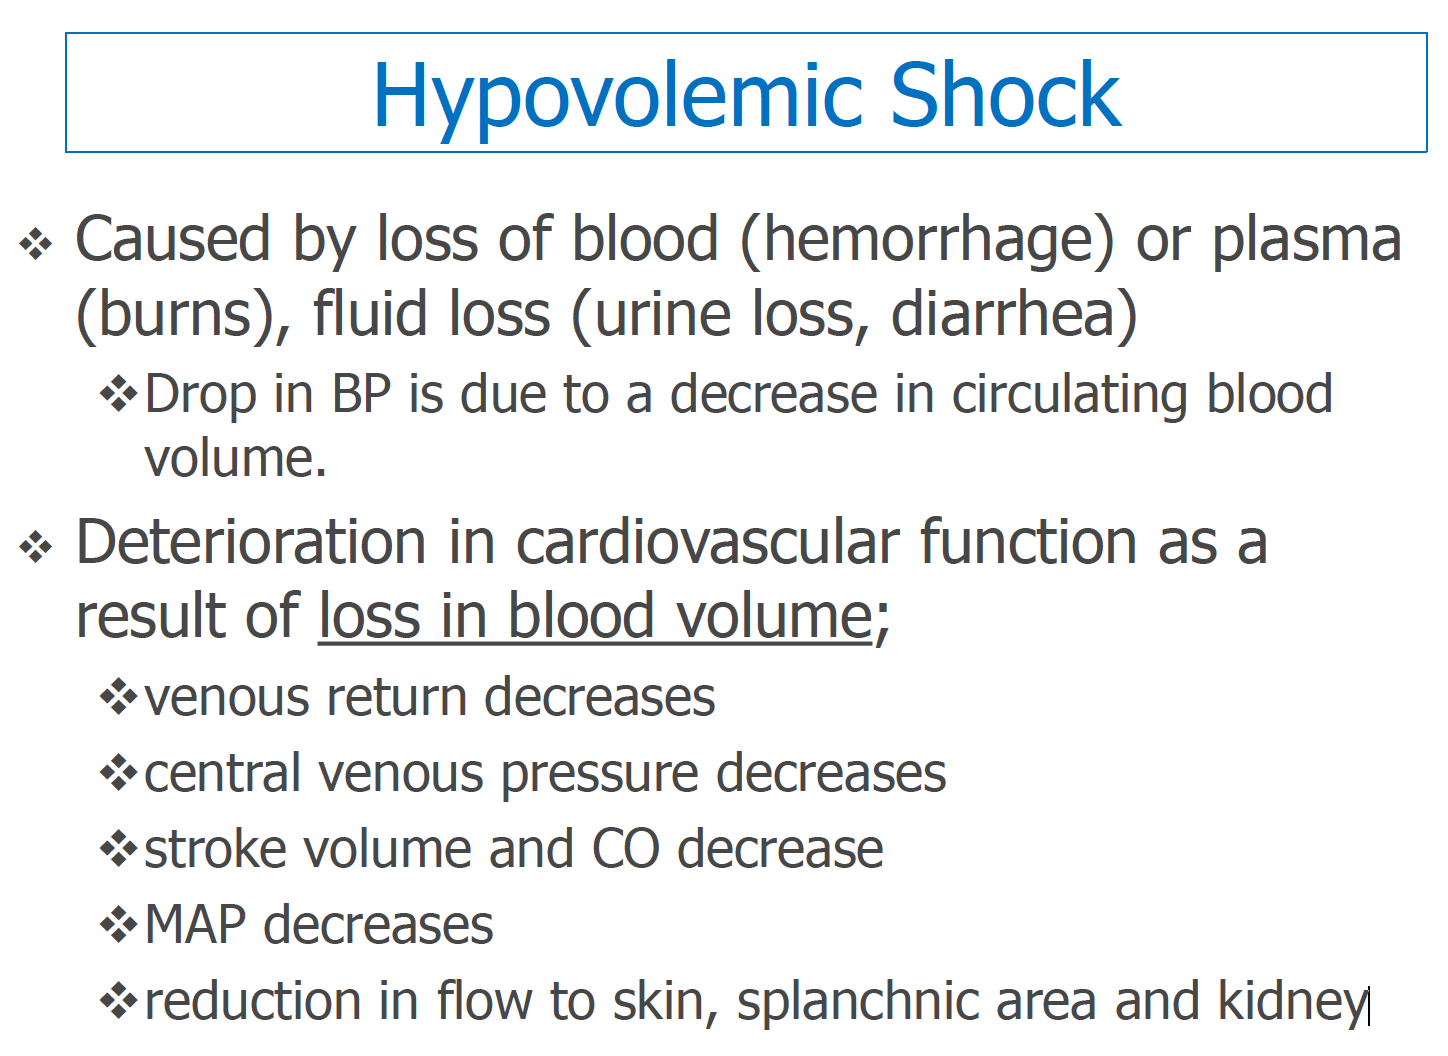 What is hypovolemic shock